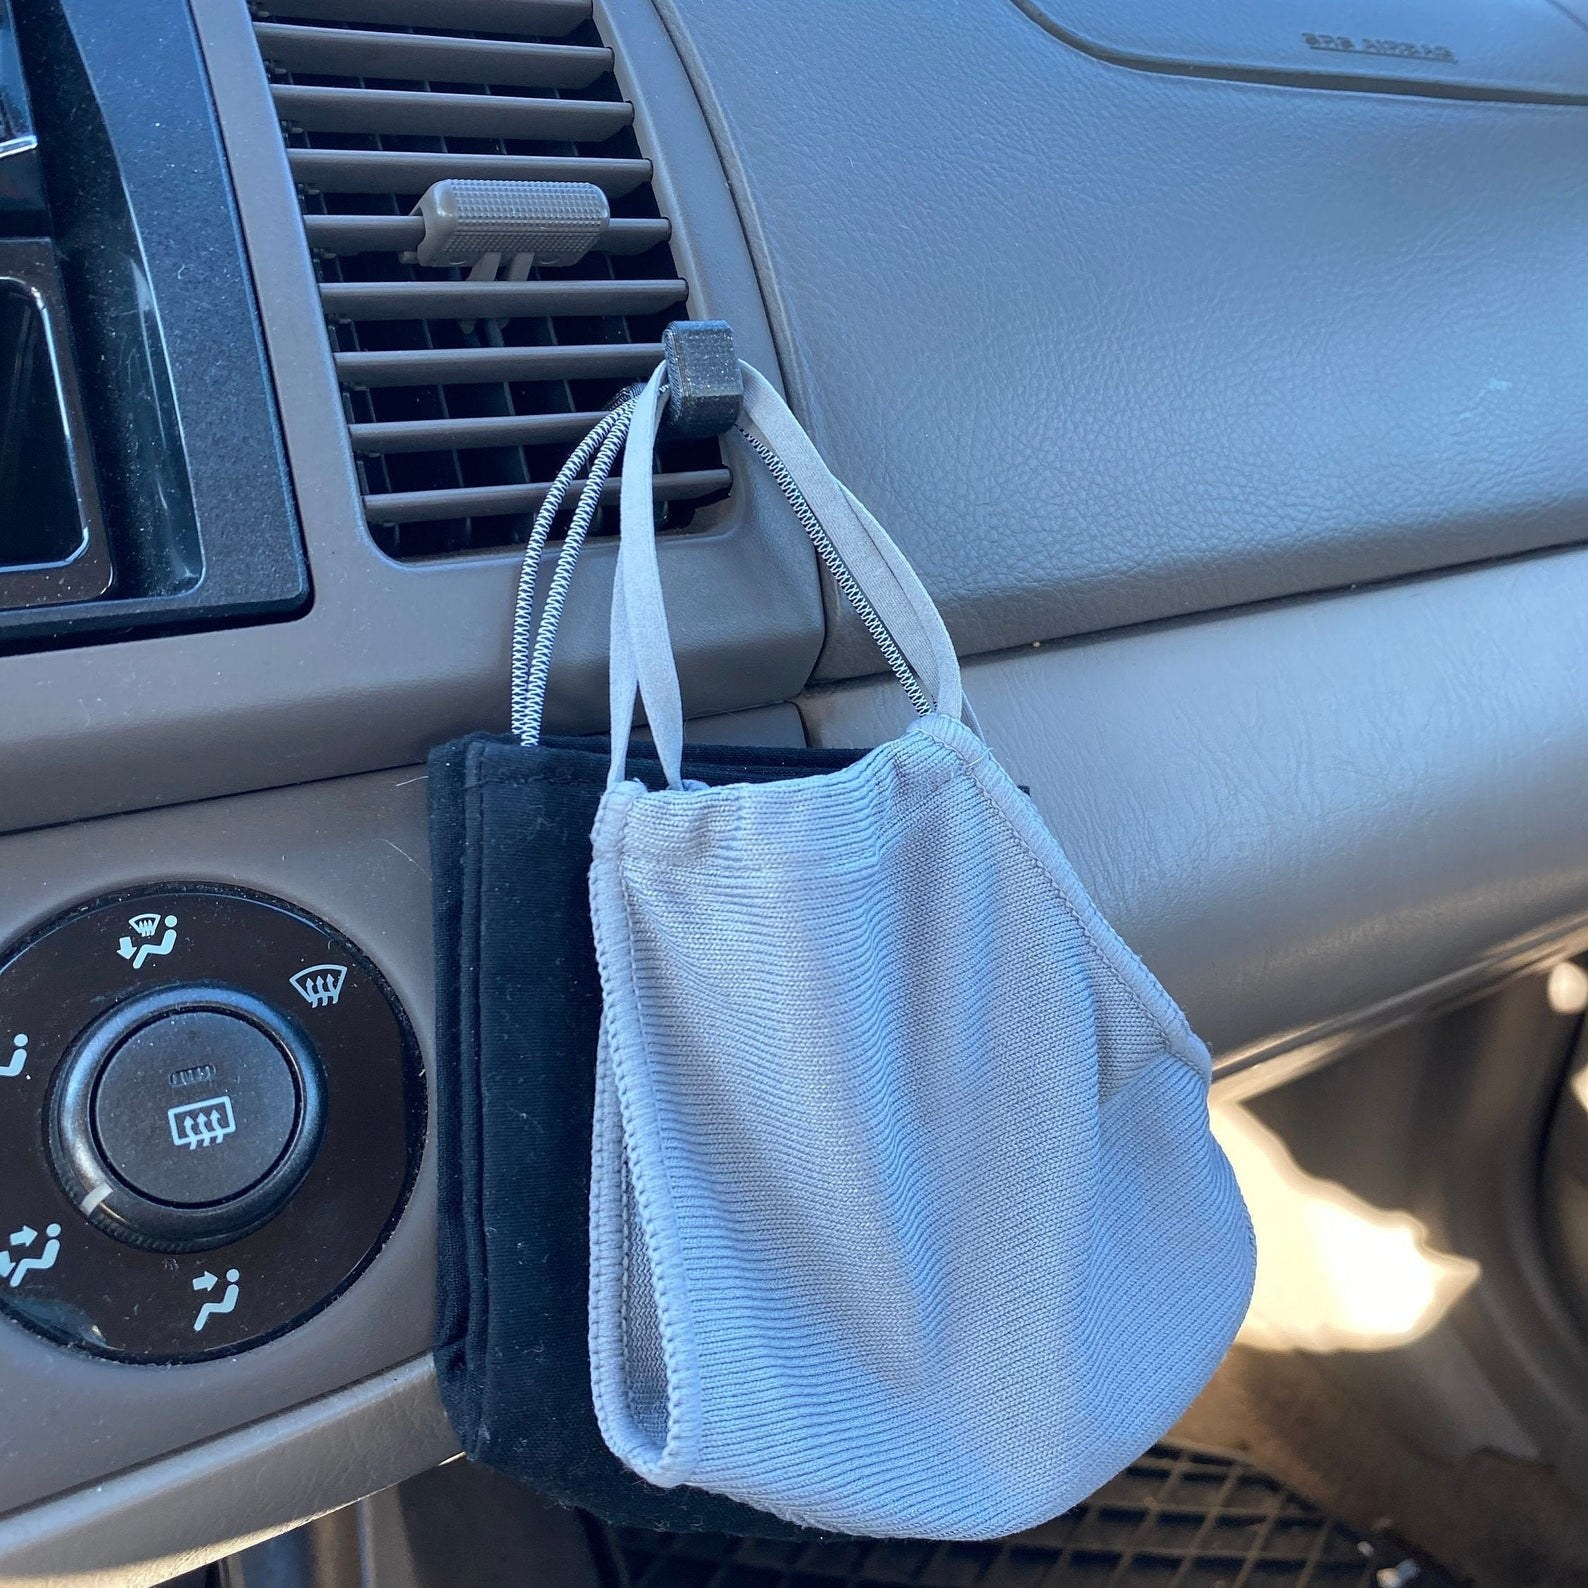 Air vent hook in car with face masks hanging from it